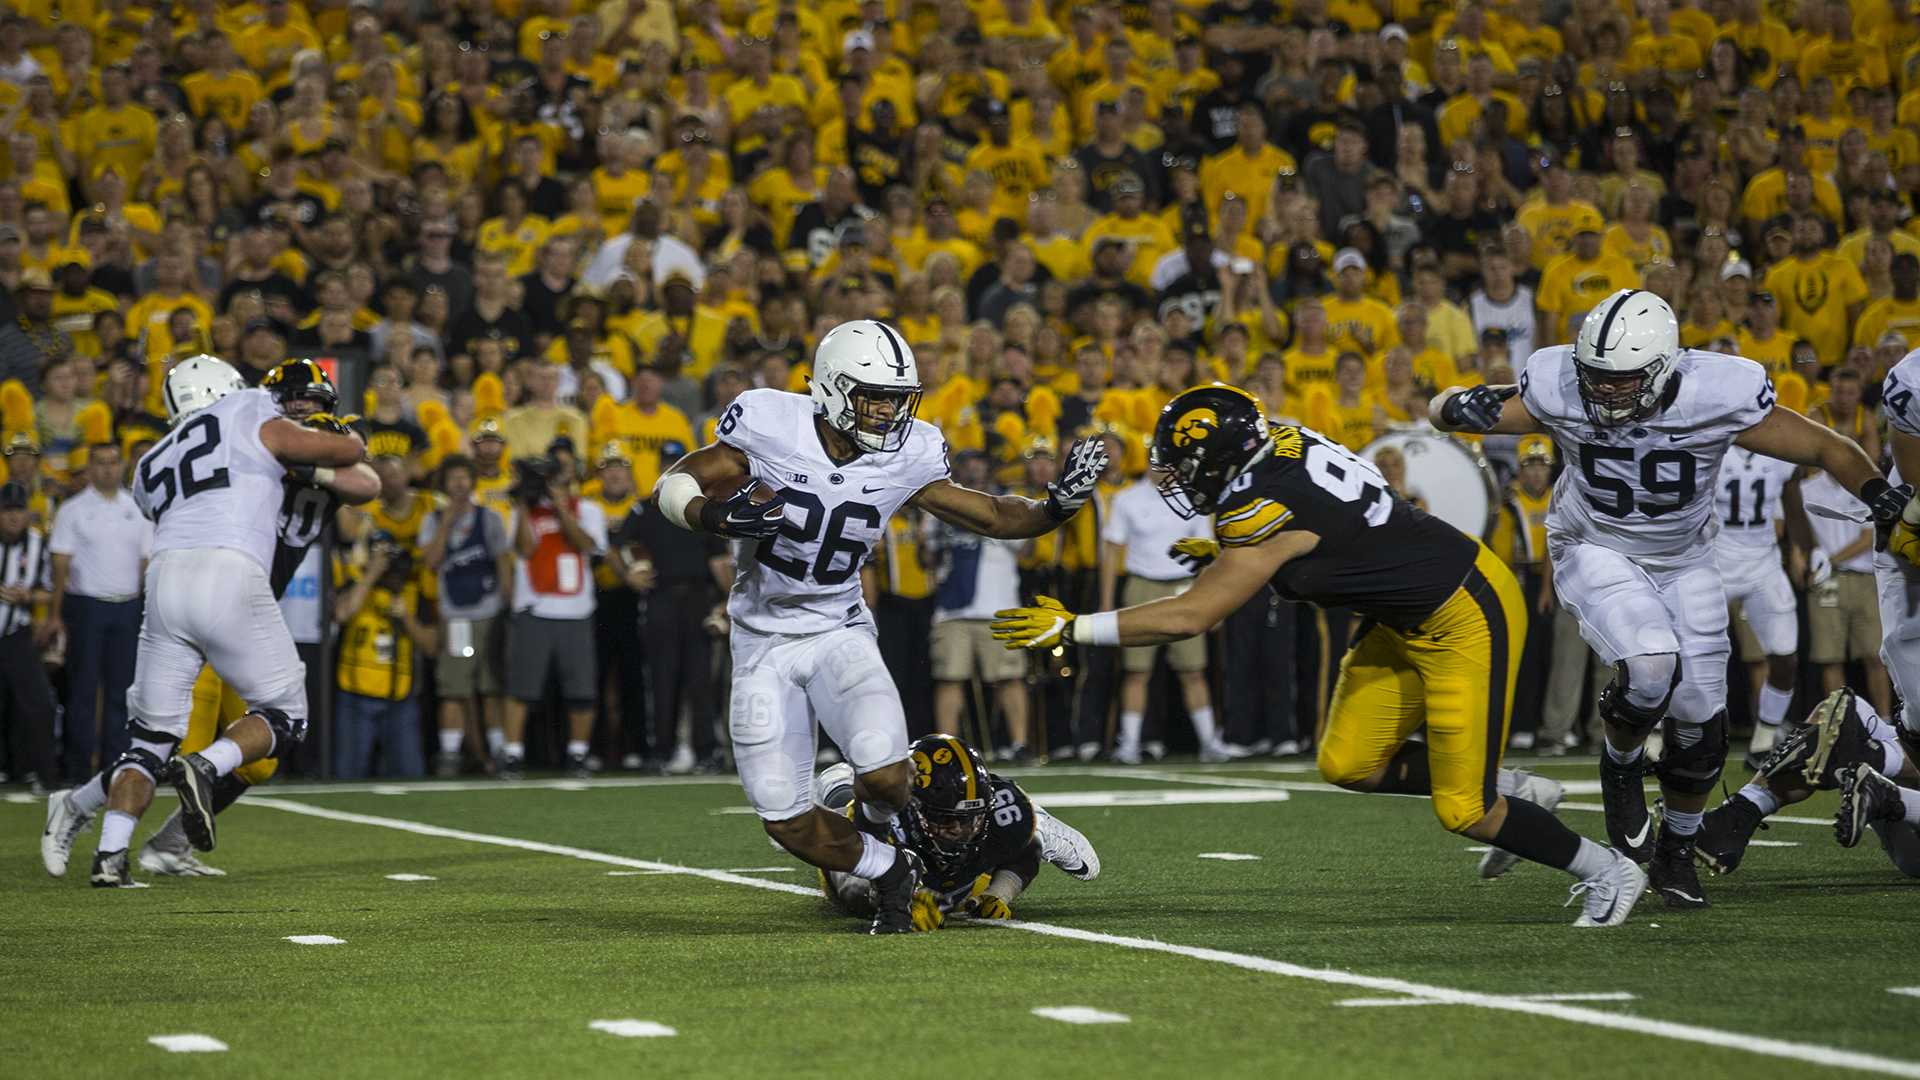 Penn State's Saquon Barkley carries the ball during Iowa's game against Penn State in Kinnick Stadium on Sept. 23. Barkley set a Penn State school record with 358 all-purpose yards. Penn State defeated Iowa, 21-19, on a last-second touchdown pass. (Nick Rohlman/The Daily Iowan)